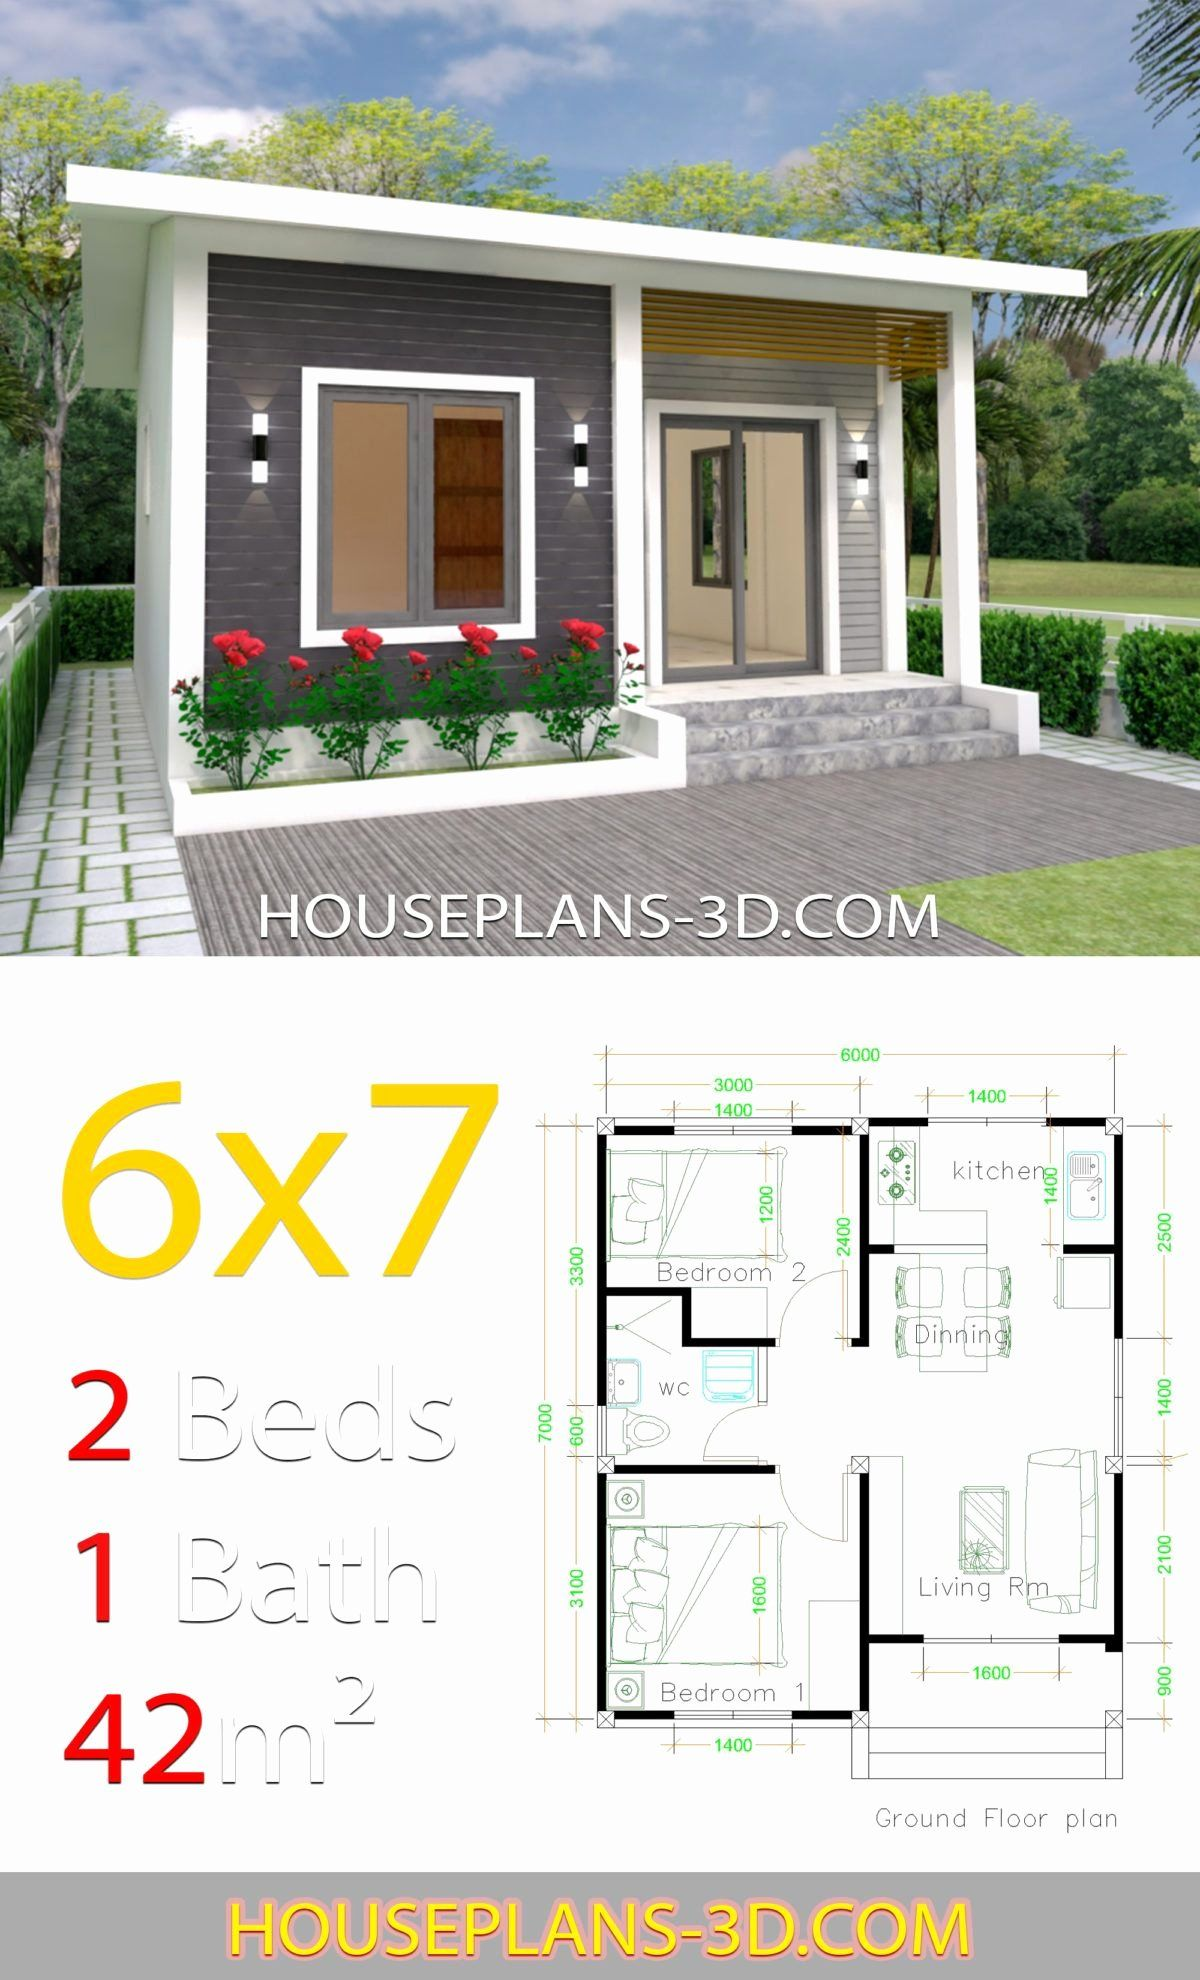 Tiny 2 Bedroom House Plans Awesome House Design 6x7 With 2 Bedrooms House Plans 3d In 2020 Simple House Design Small House Design Small House Design Plans